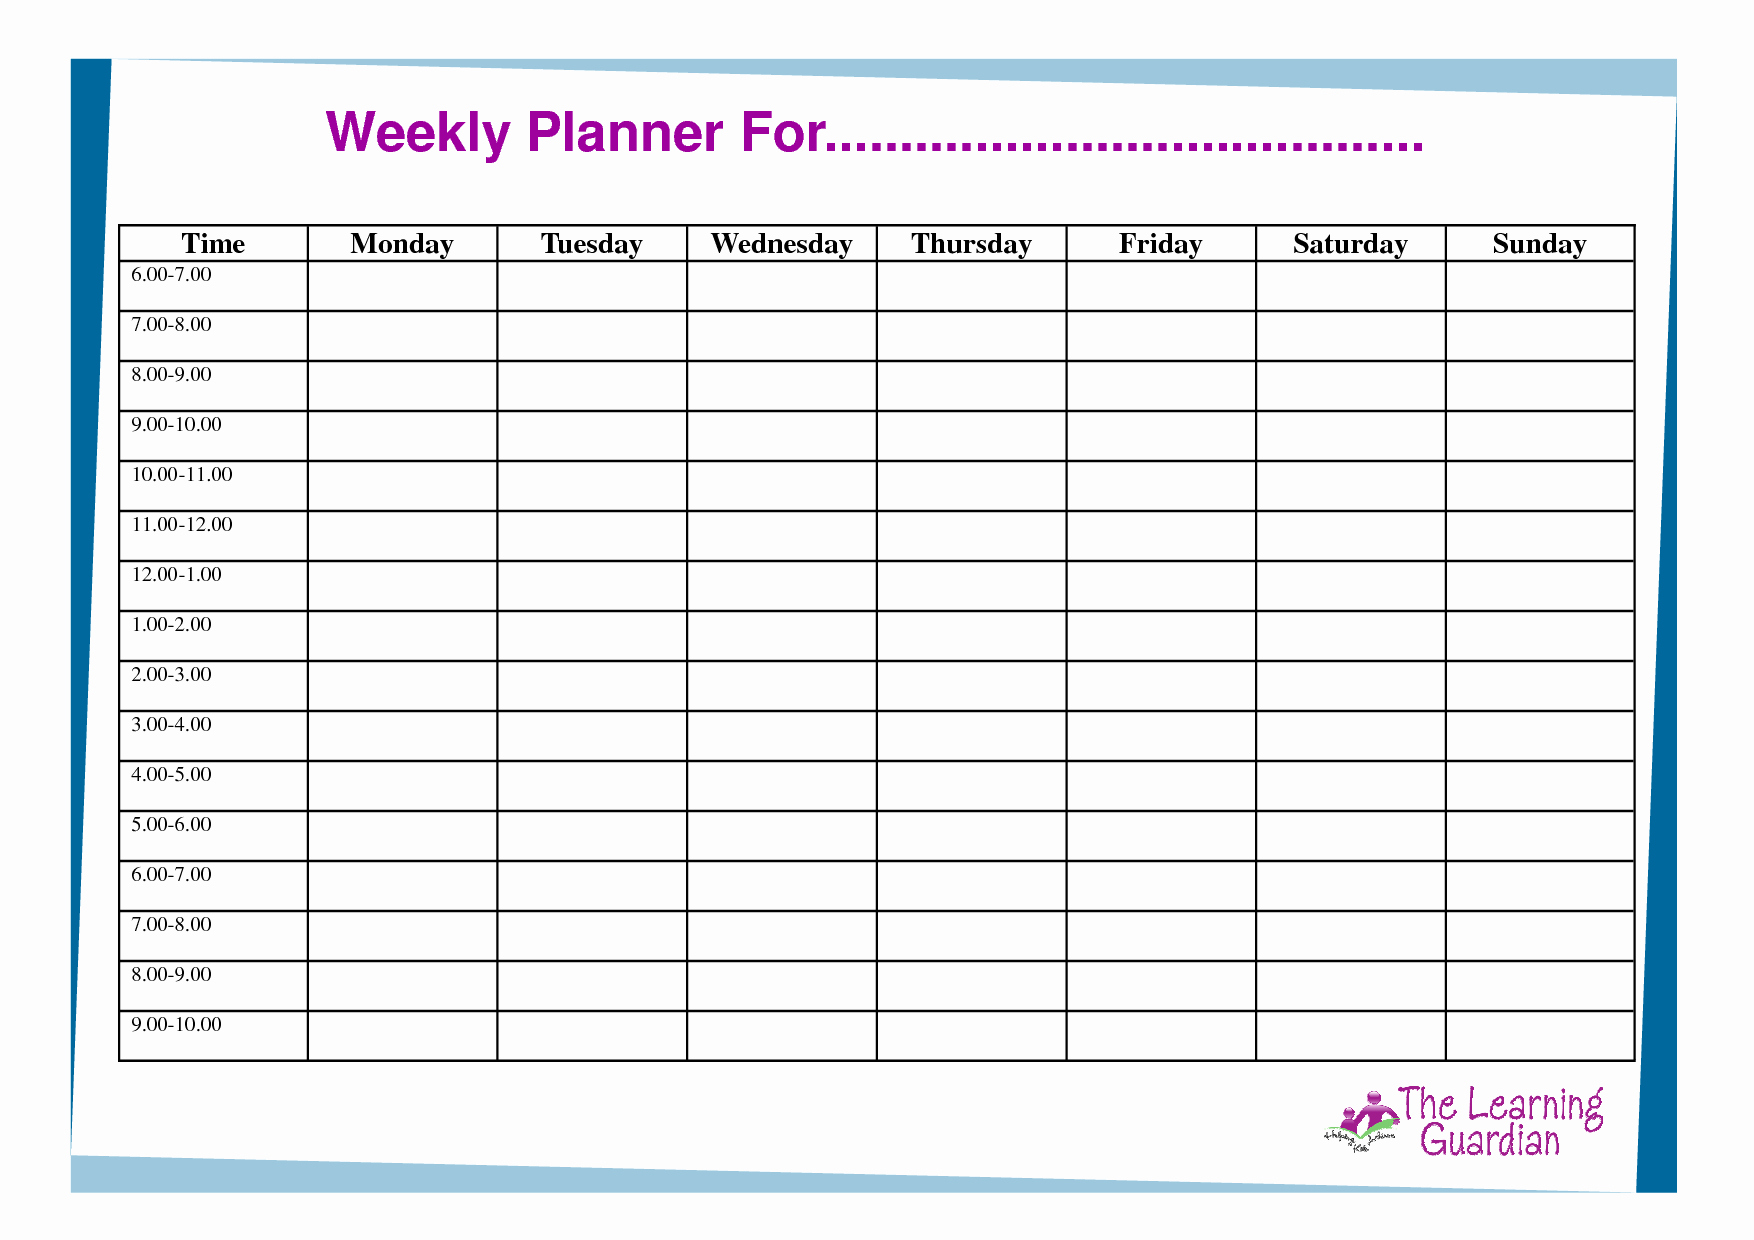 Agenda with Time Slots Inspirational Free Printable Weekly Calendar Templates